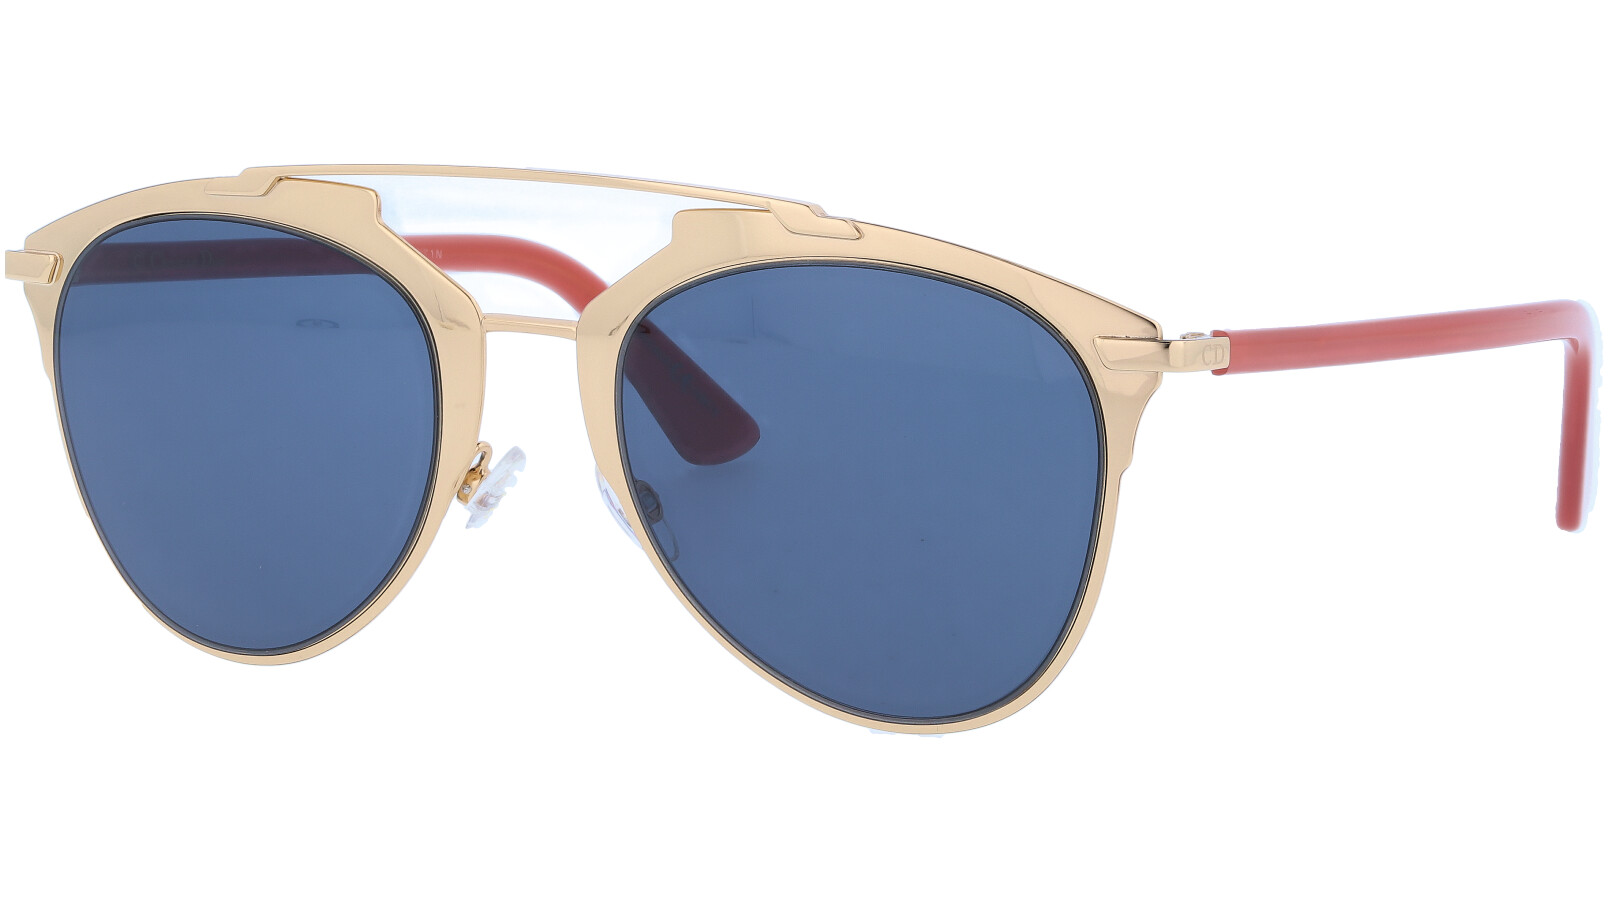 DIOR DIORREFLECTED TUY 52 DKRUTH Sunglasses